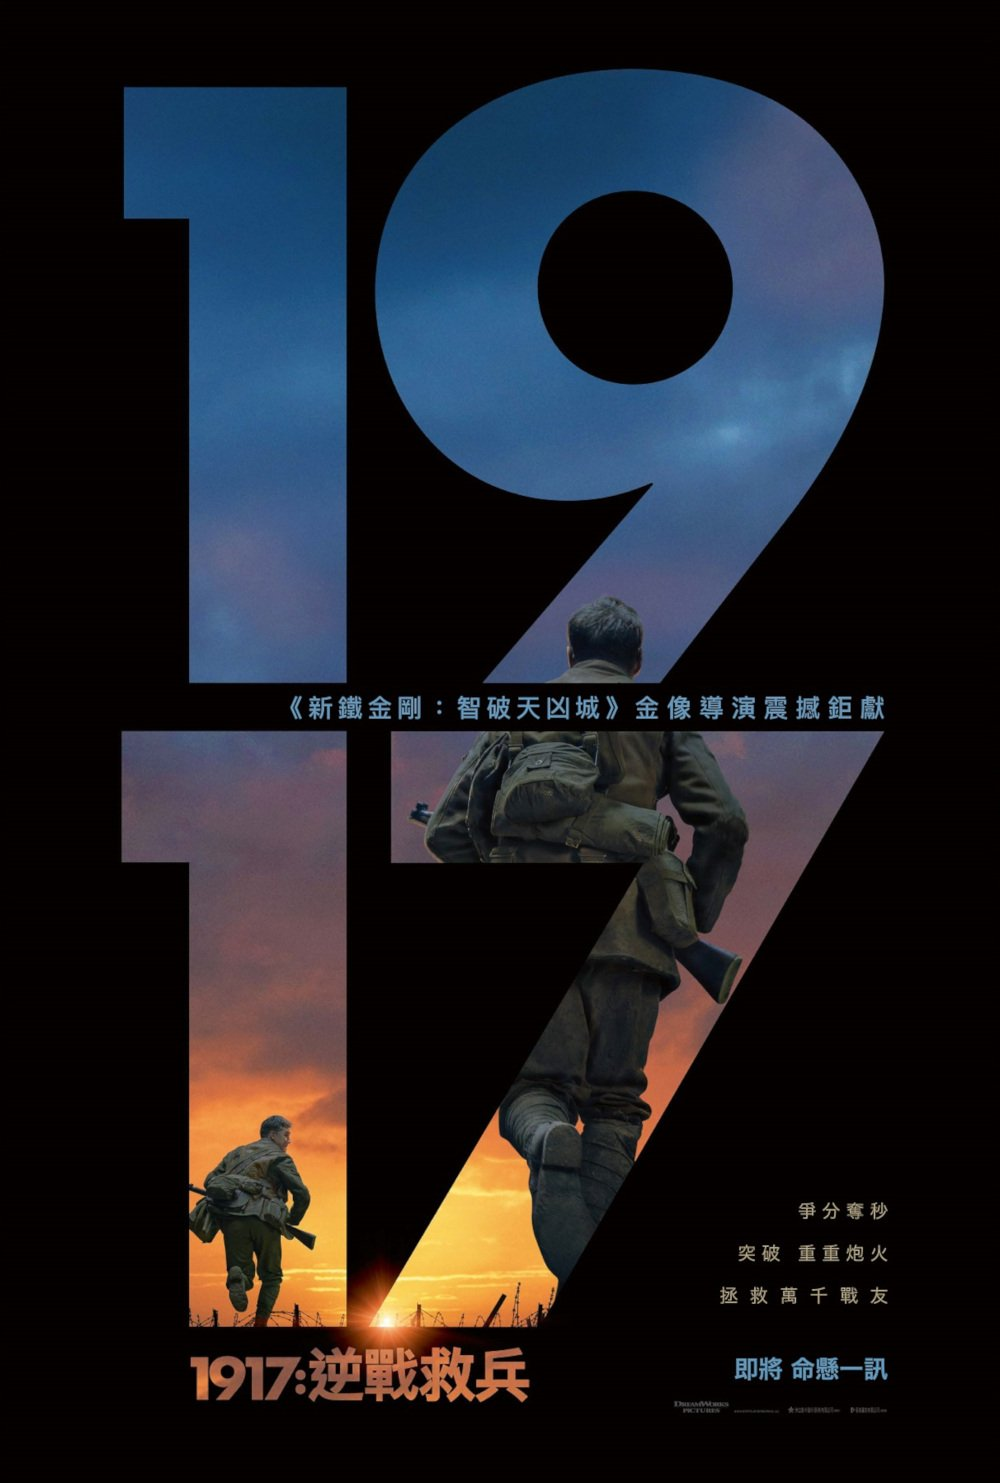 1917:逆戰救兵電影圖片 - 1917_Poster_New_Compressed_1570119183.jpg